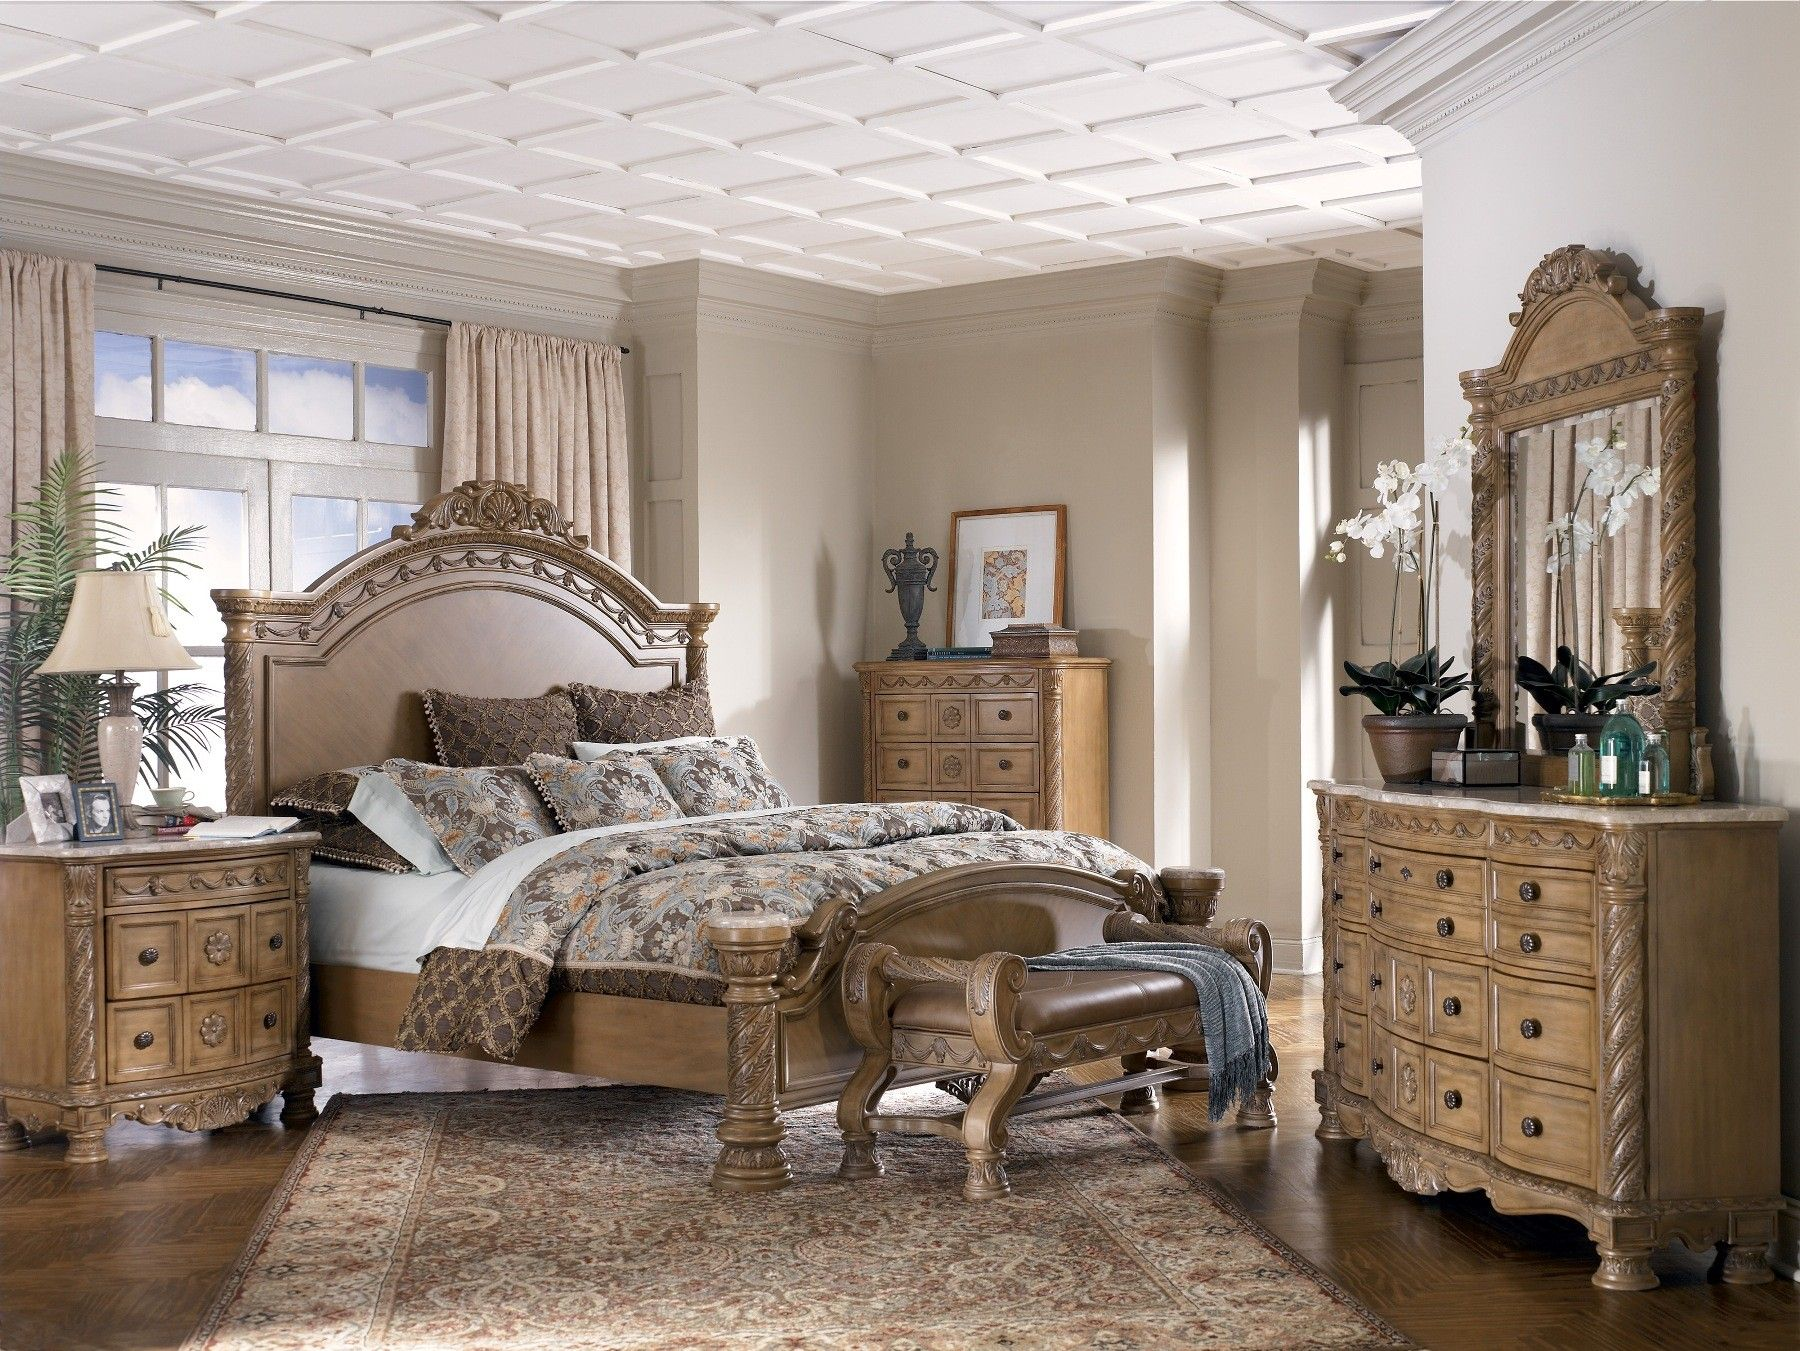 Ashley modern bedroom furniture - Ashley Furniture Gallery Ashley Furniture South Coast Panel Bedroom Set Bedroom Sets Bedroom